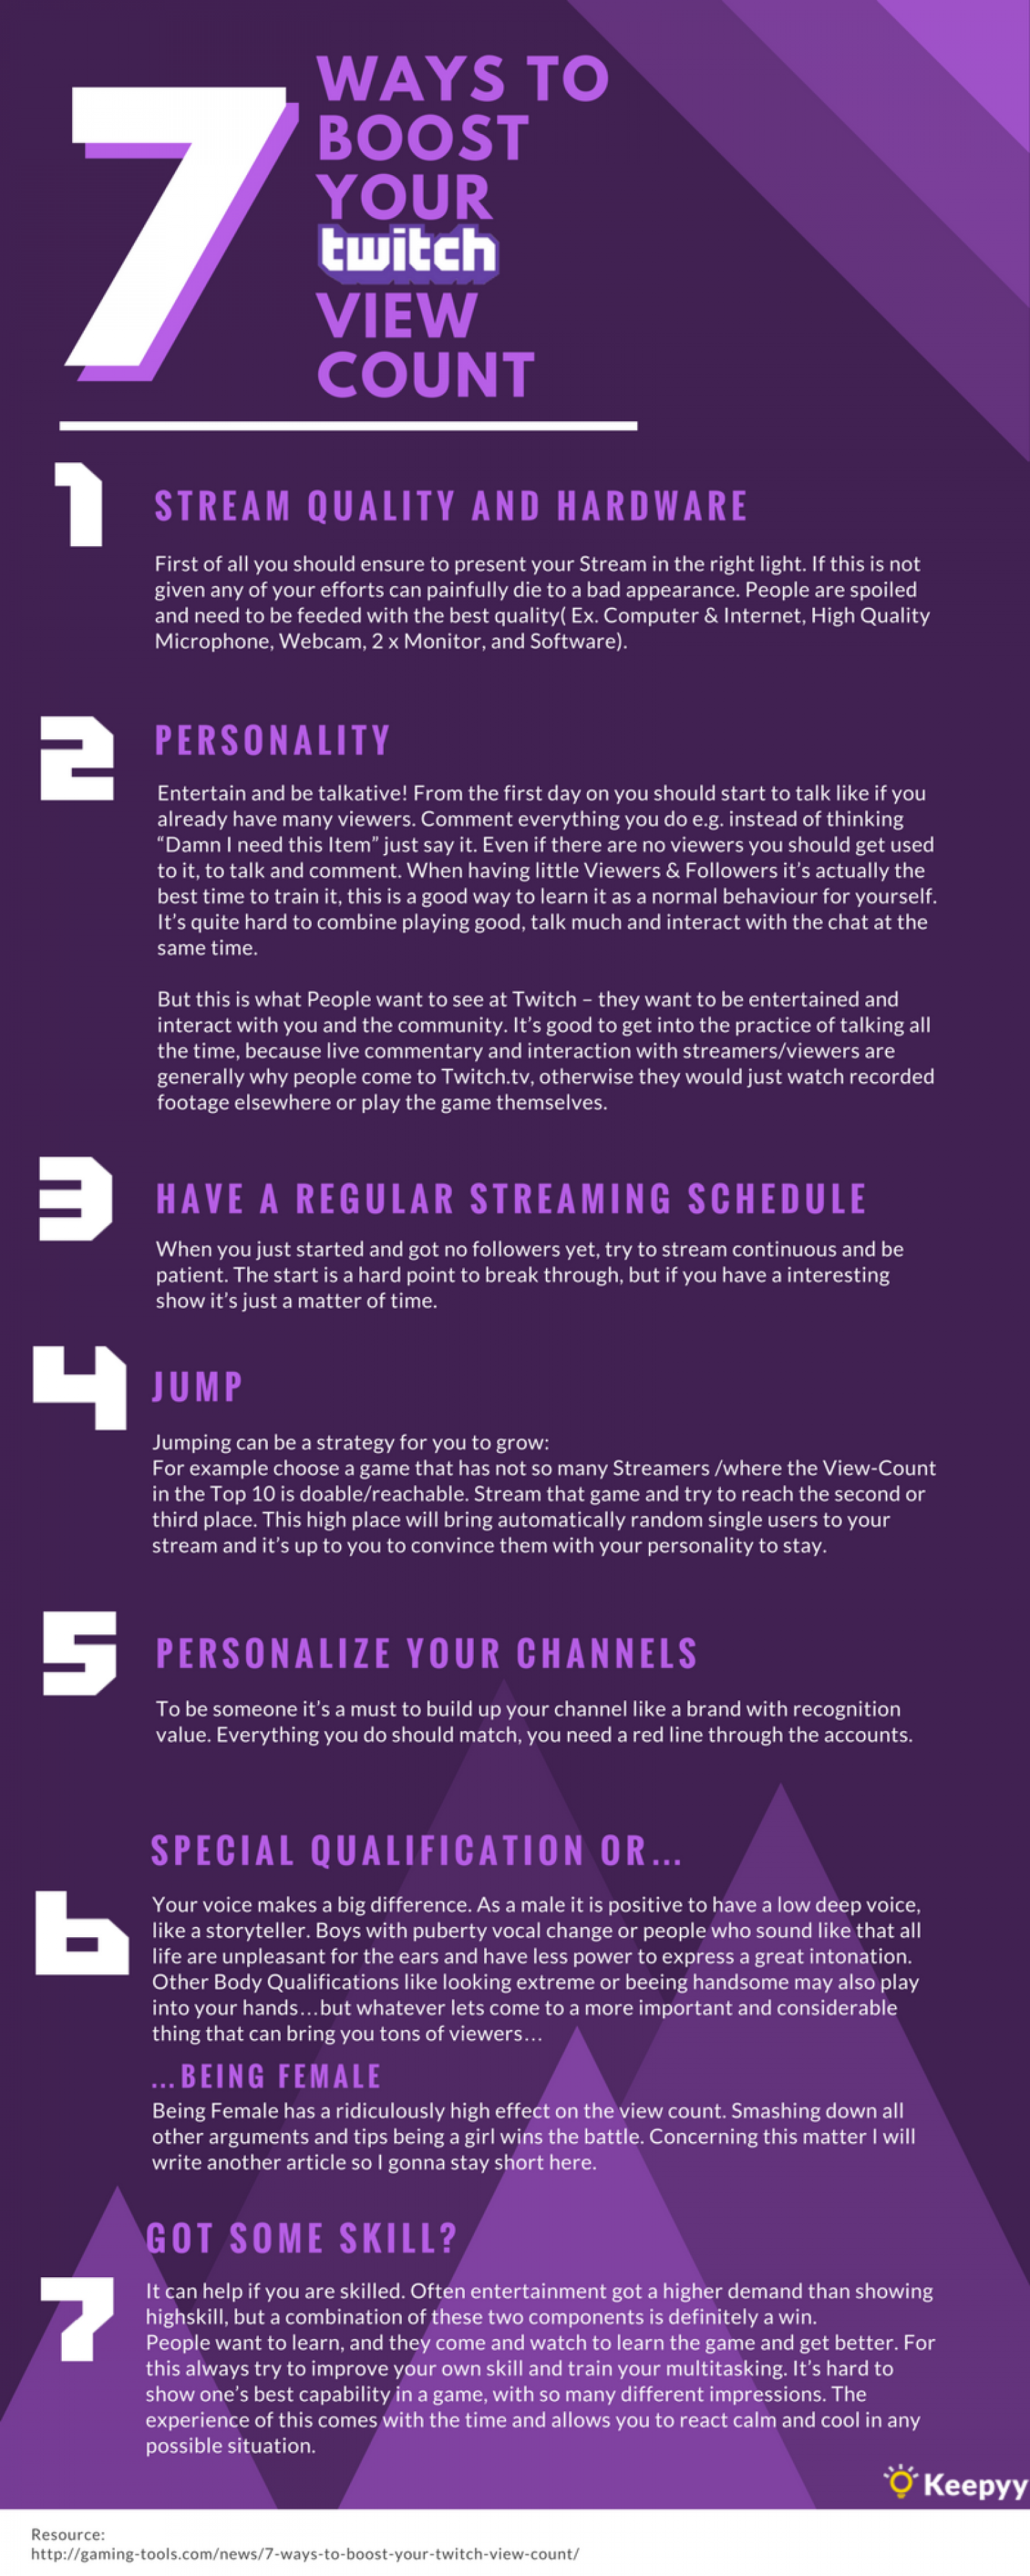 7 Ways To Boost Your Twitch View Count Infographic Twitch Twitch Streaming Setup Business Blog